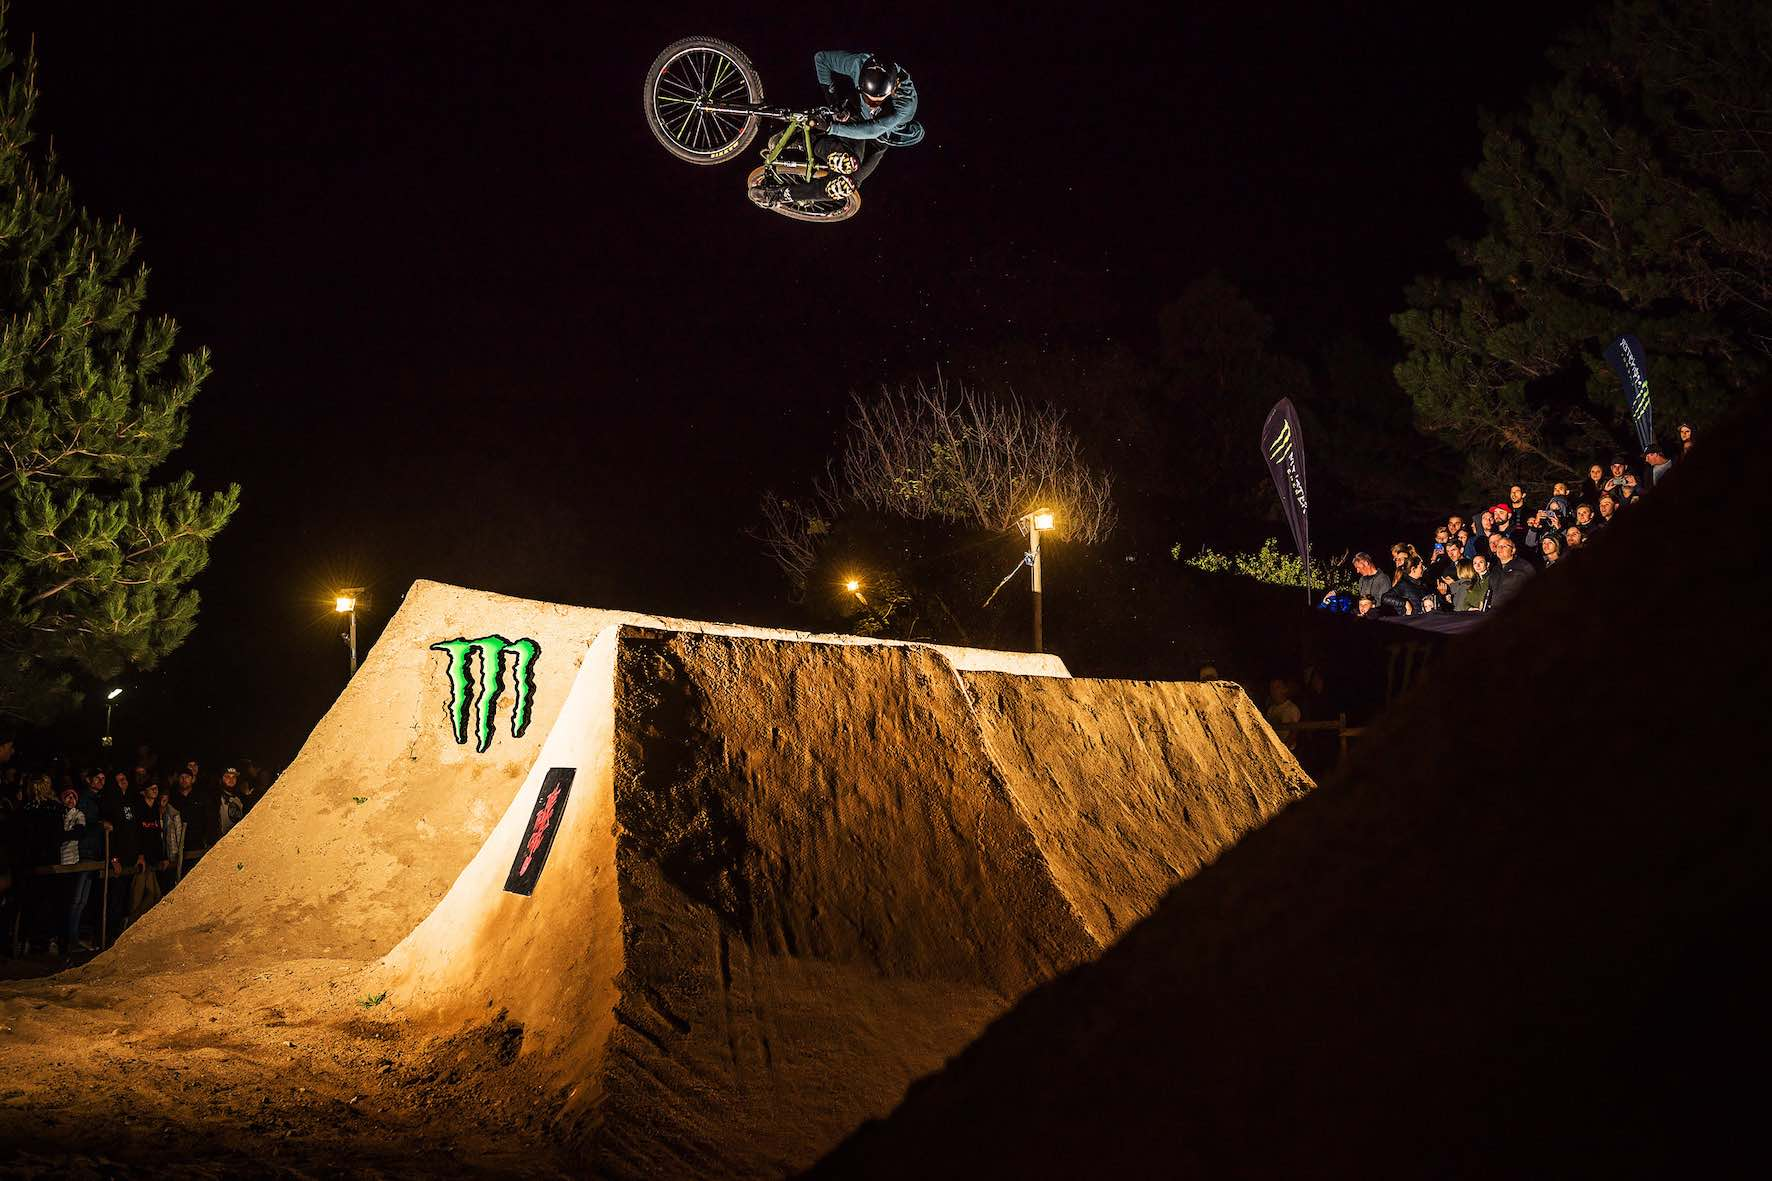 Matt Macduff taking 2nd place in The Night Harvest 2019 MTB dirt jump contest